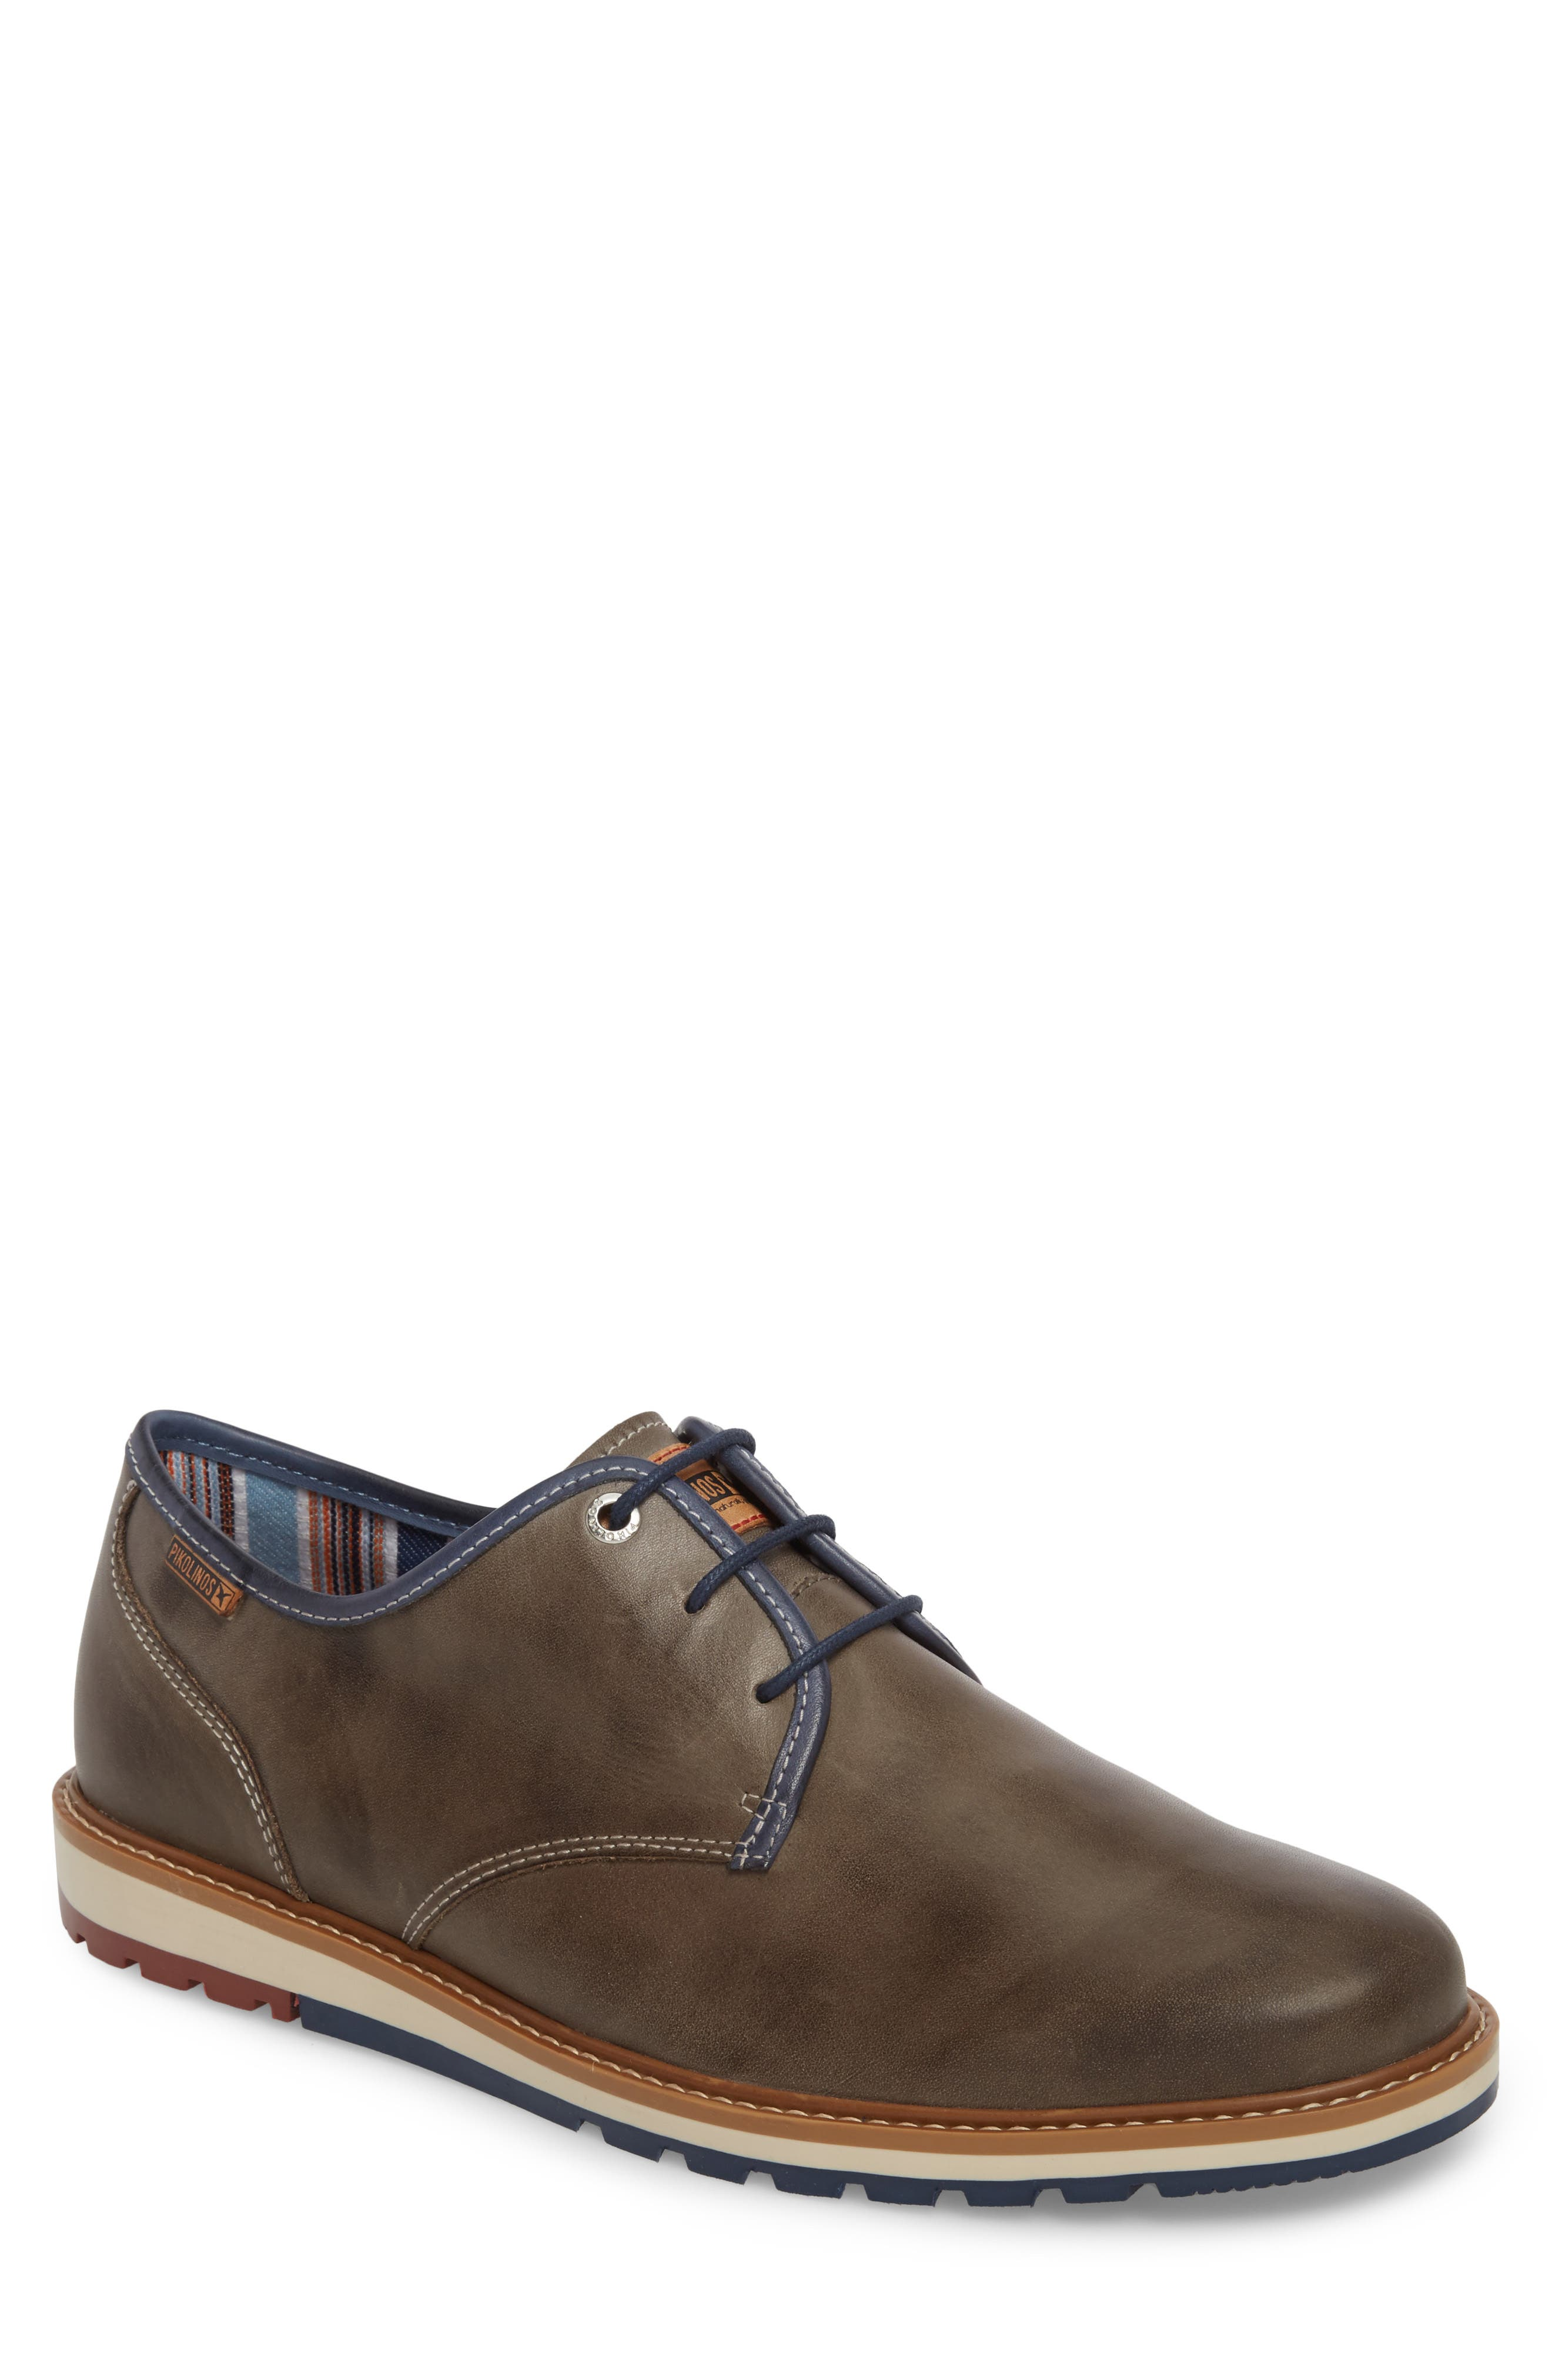 Berna Plain Toe Oxford,                         Main,                         color, 020